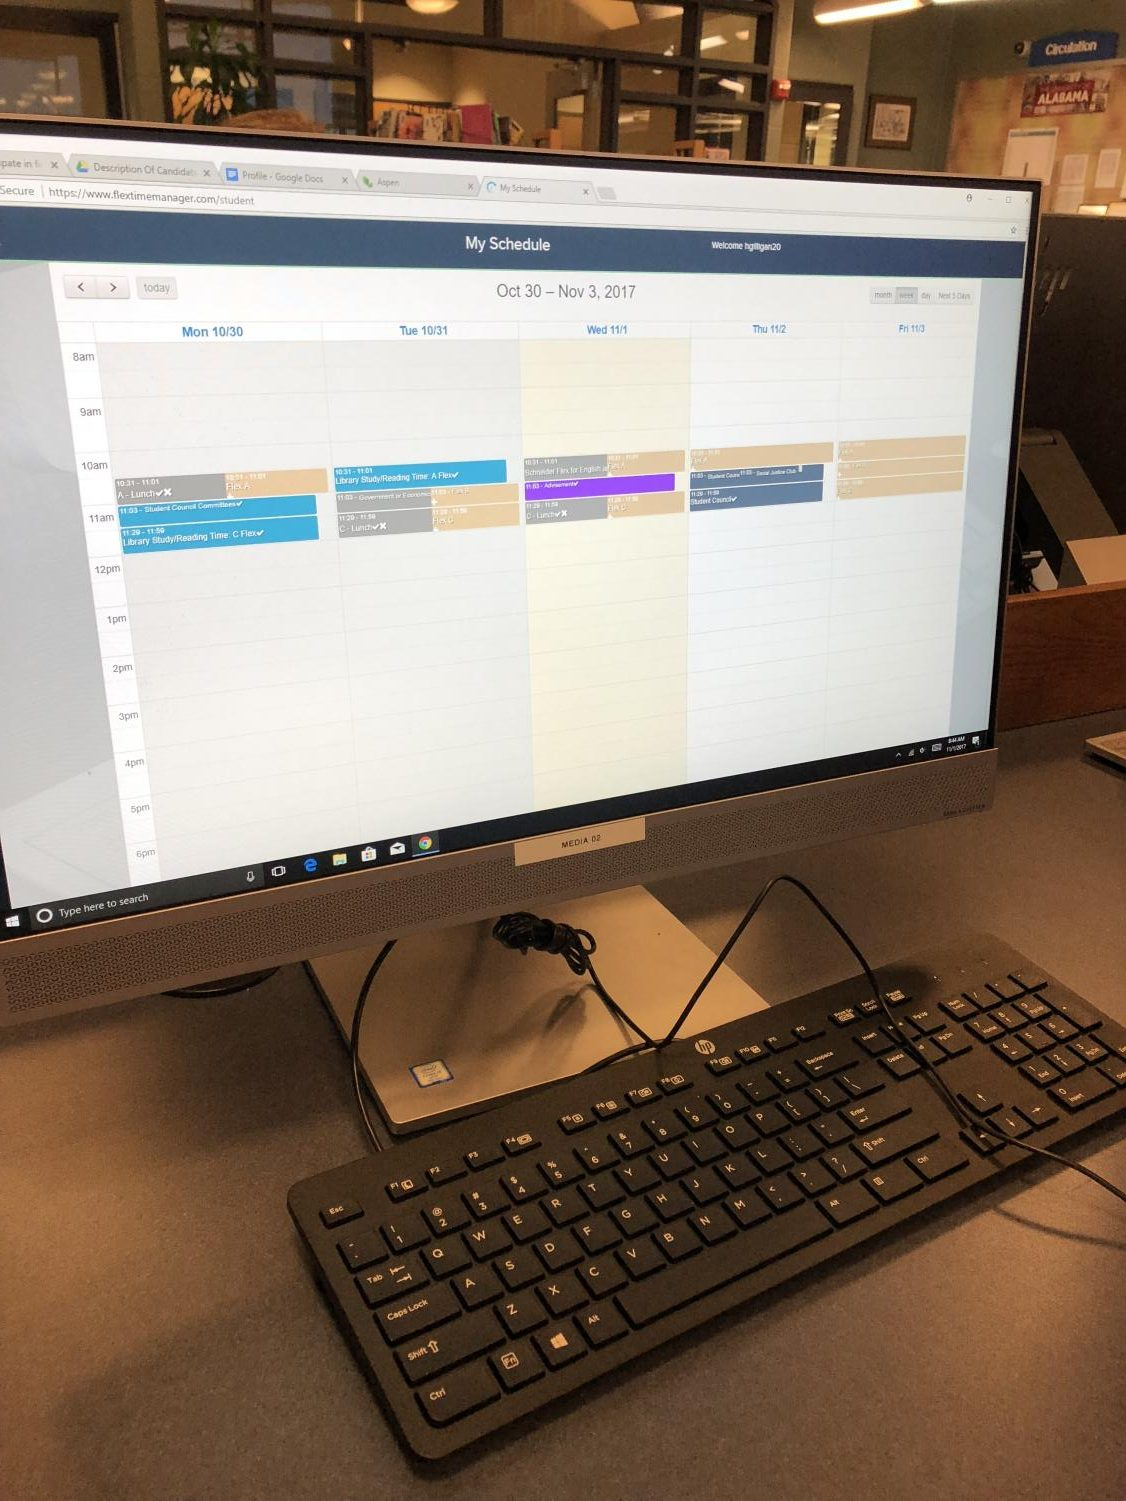 Flextime manager viewed on the computer whenever you log onto your school account.